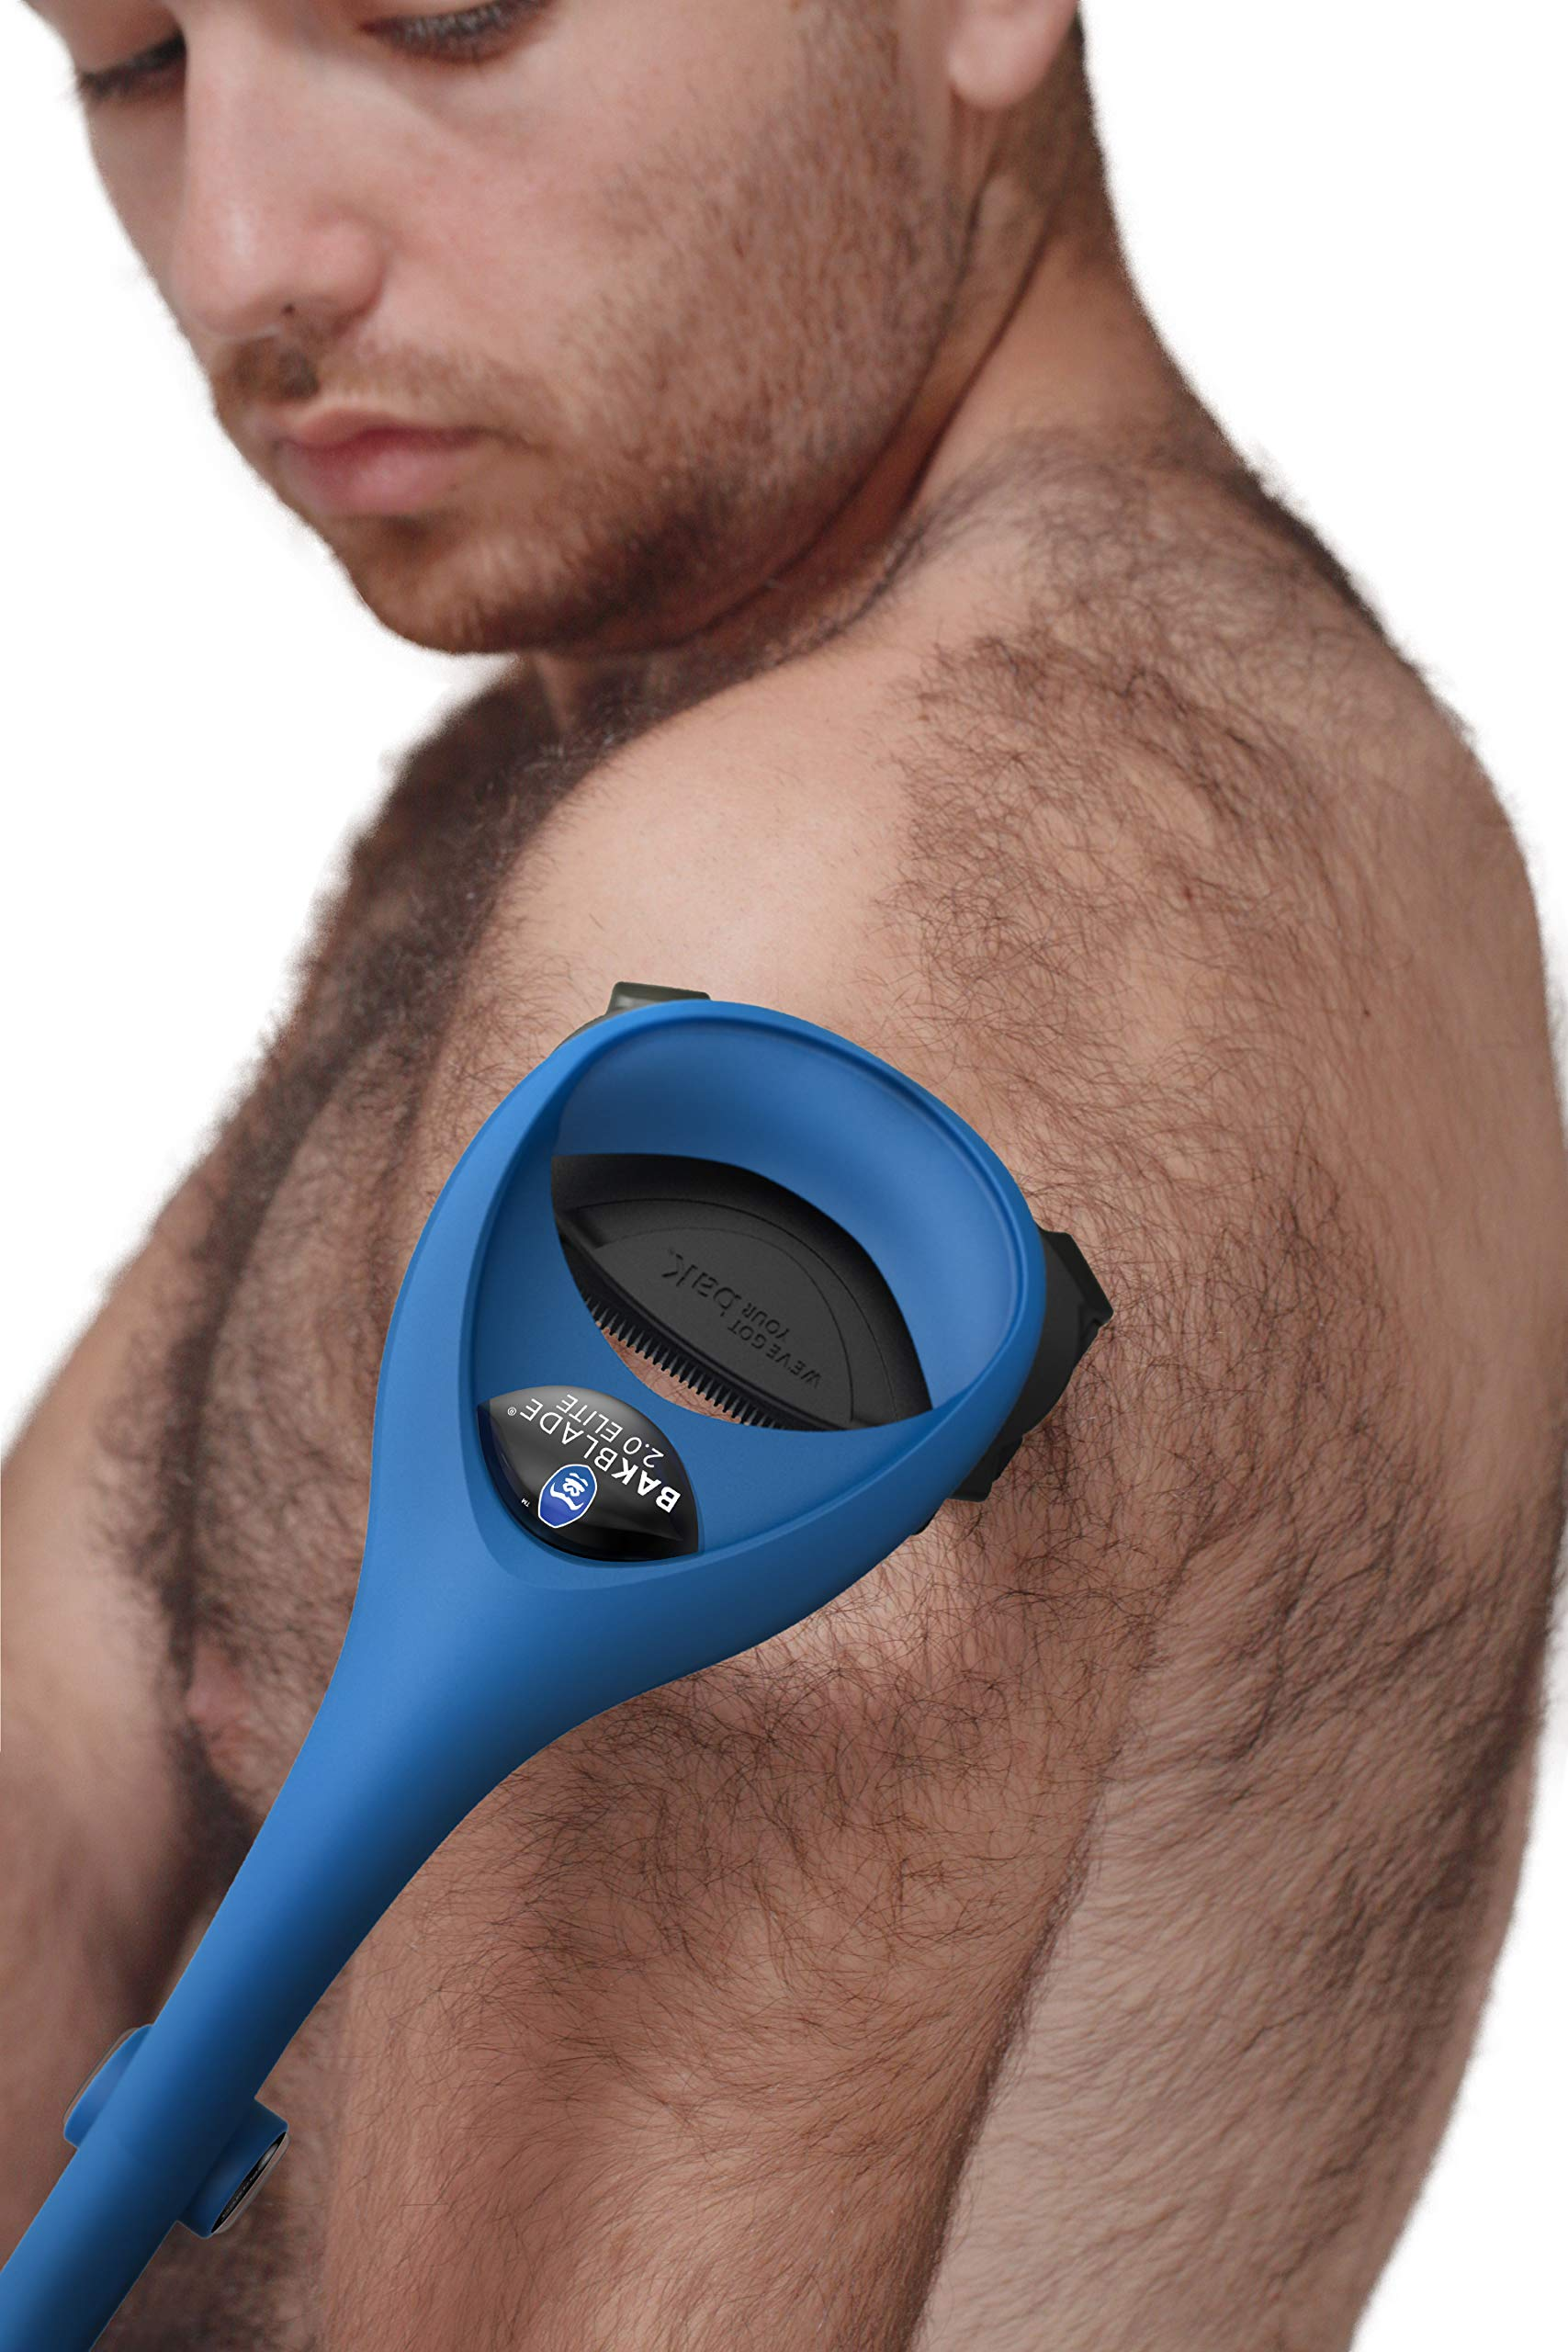 BAKblade 2.0/ELITE PLUS - Back Hair Removal and Body Shaver (DIY), Easy to Use Ergonomic Handle for a Close, Pain-Free Shave, 3 of the Wet or Dry Disposable Razor Blades, Scrubbing Sleeve Included